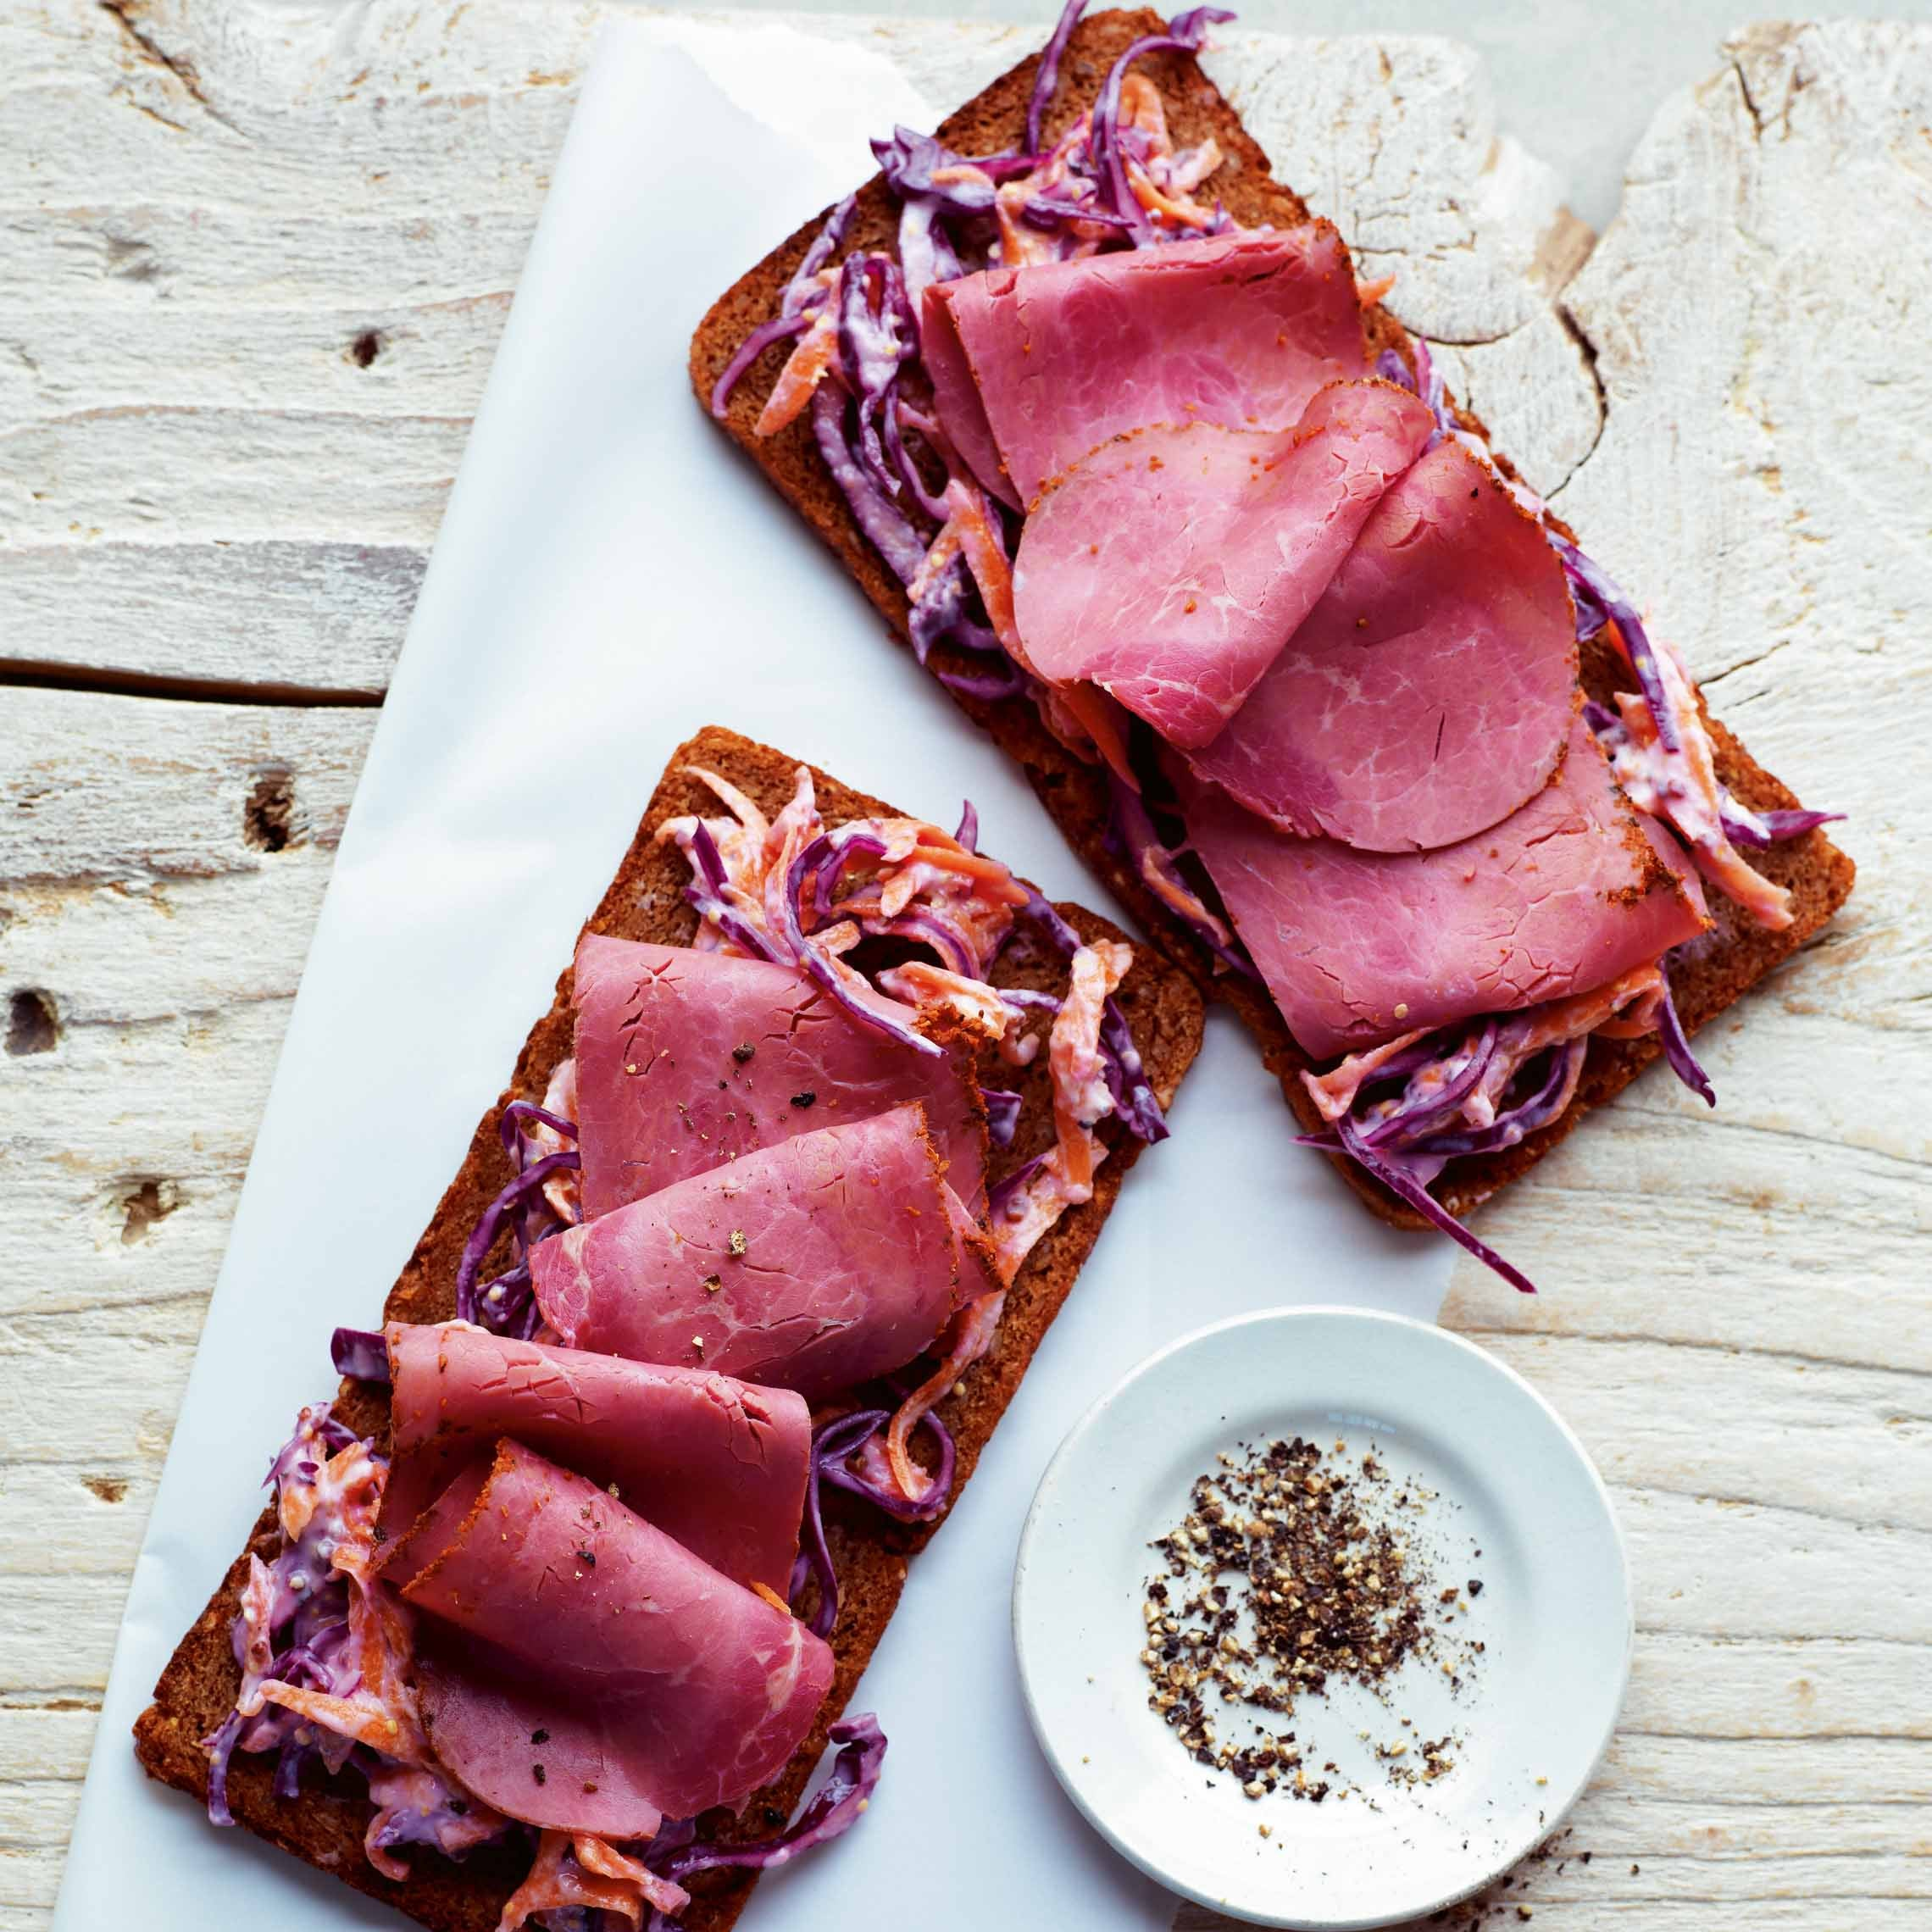 Photo of Pastrami & coleslaw on rye by WW